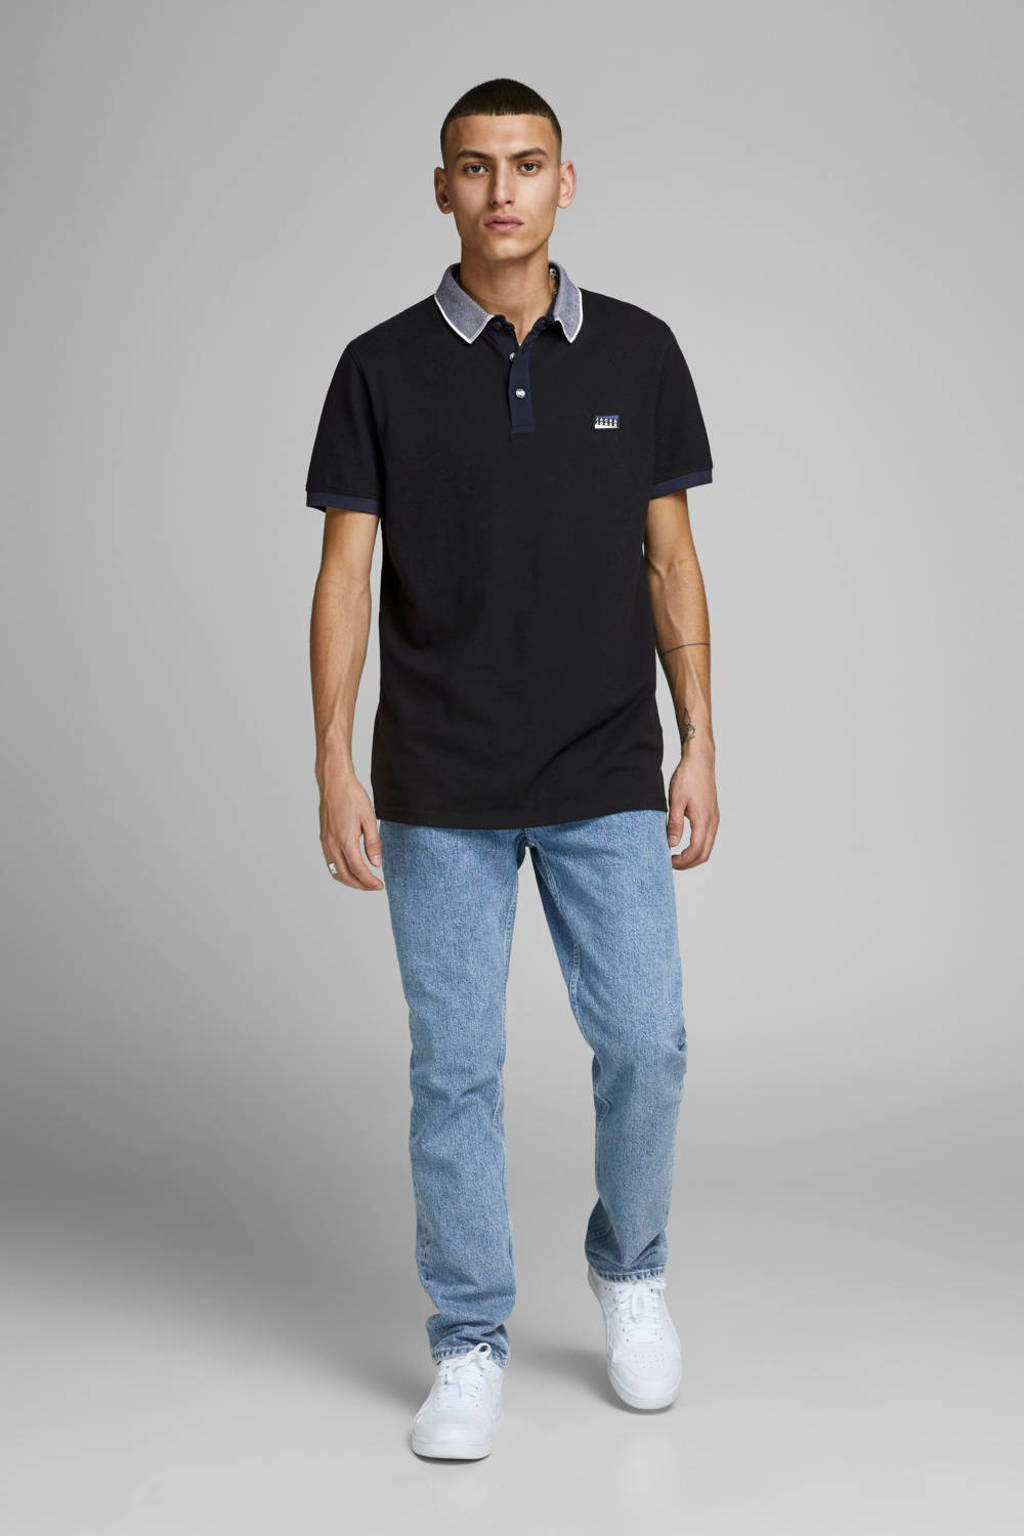 JACK & JONES CORE slim fit polo met logo zwart, Zwart